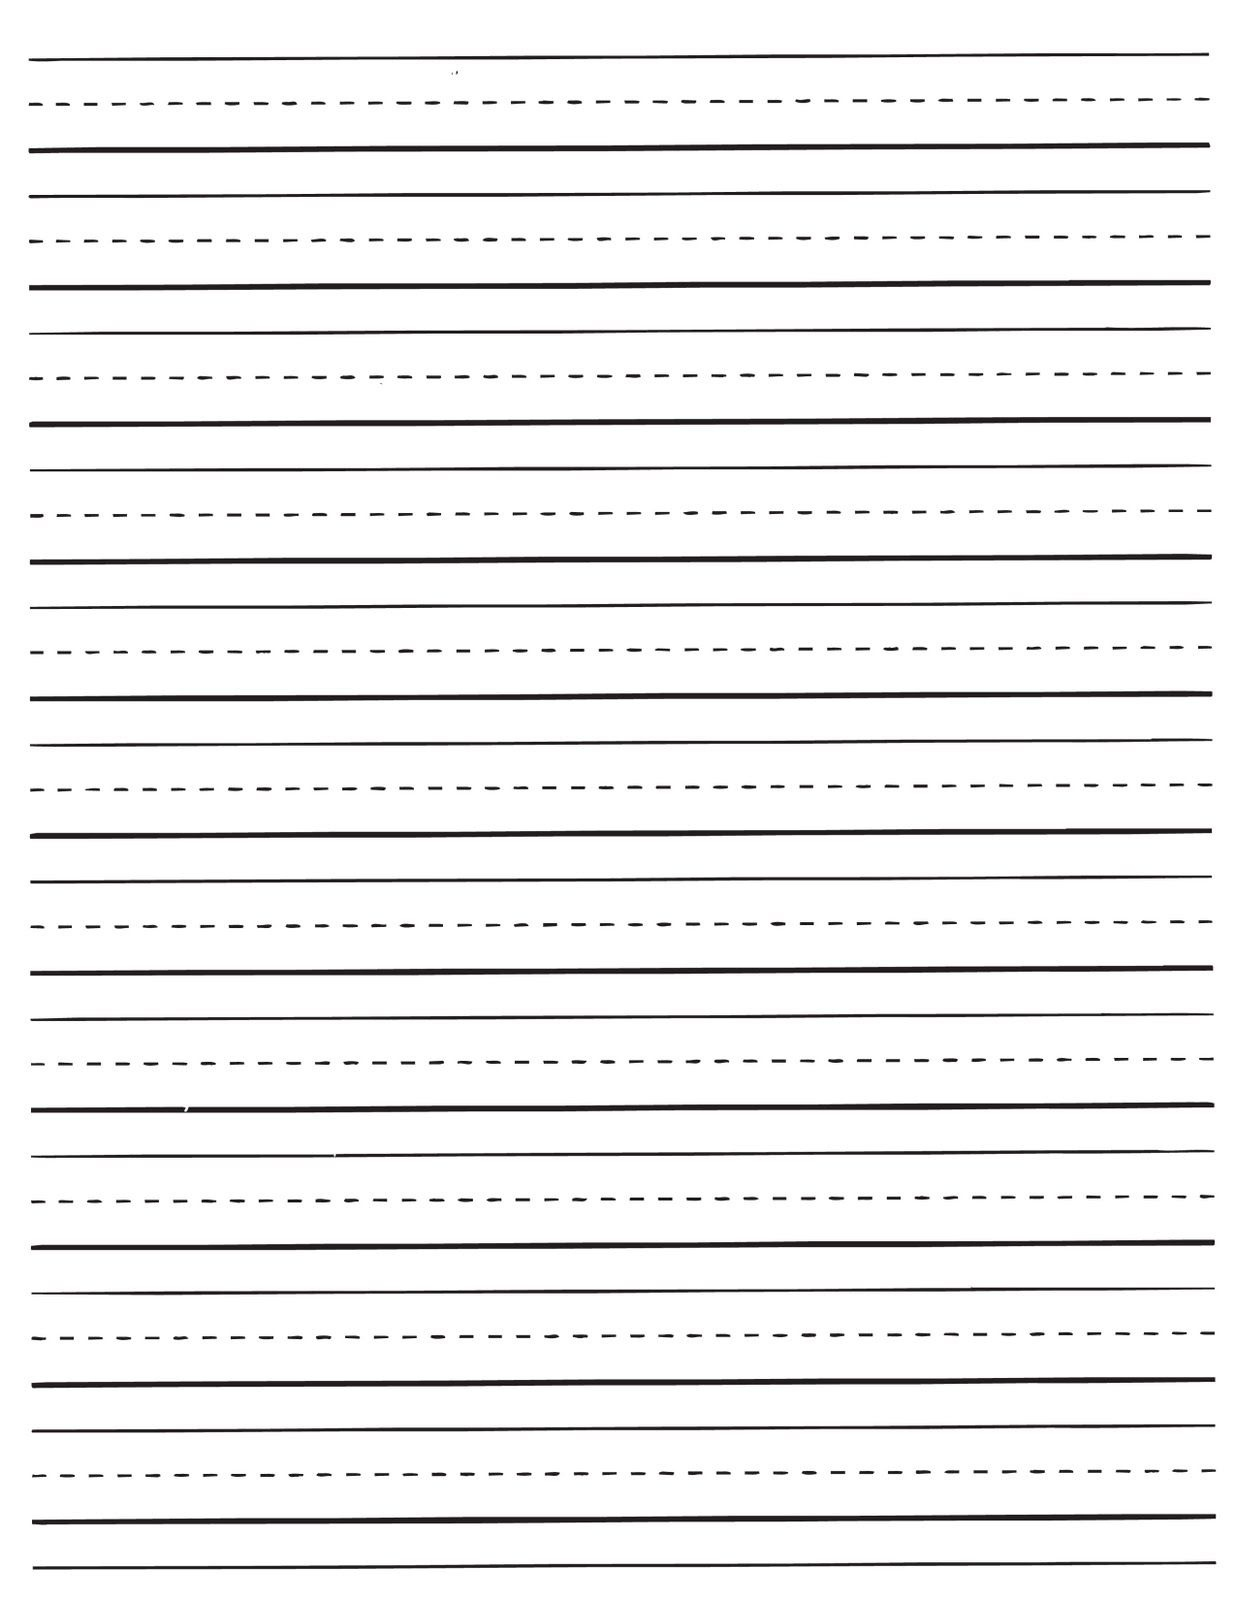 Pinabigail Robertson On Their First Teacher. | Lined Paper For - Elementary Lined Paper Printable Free